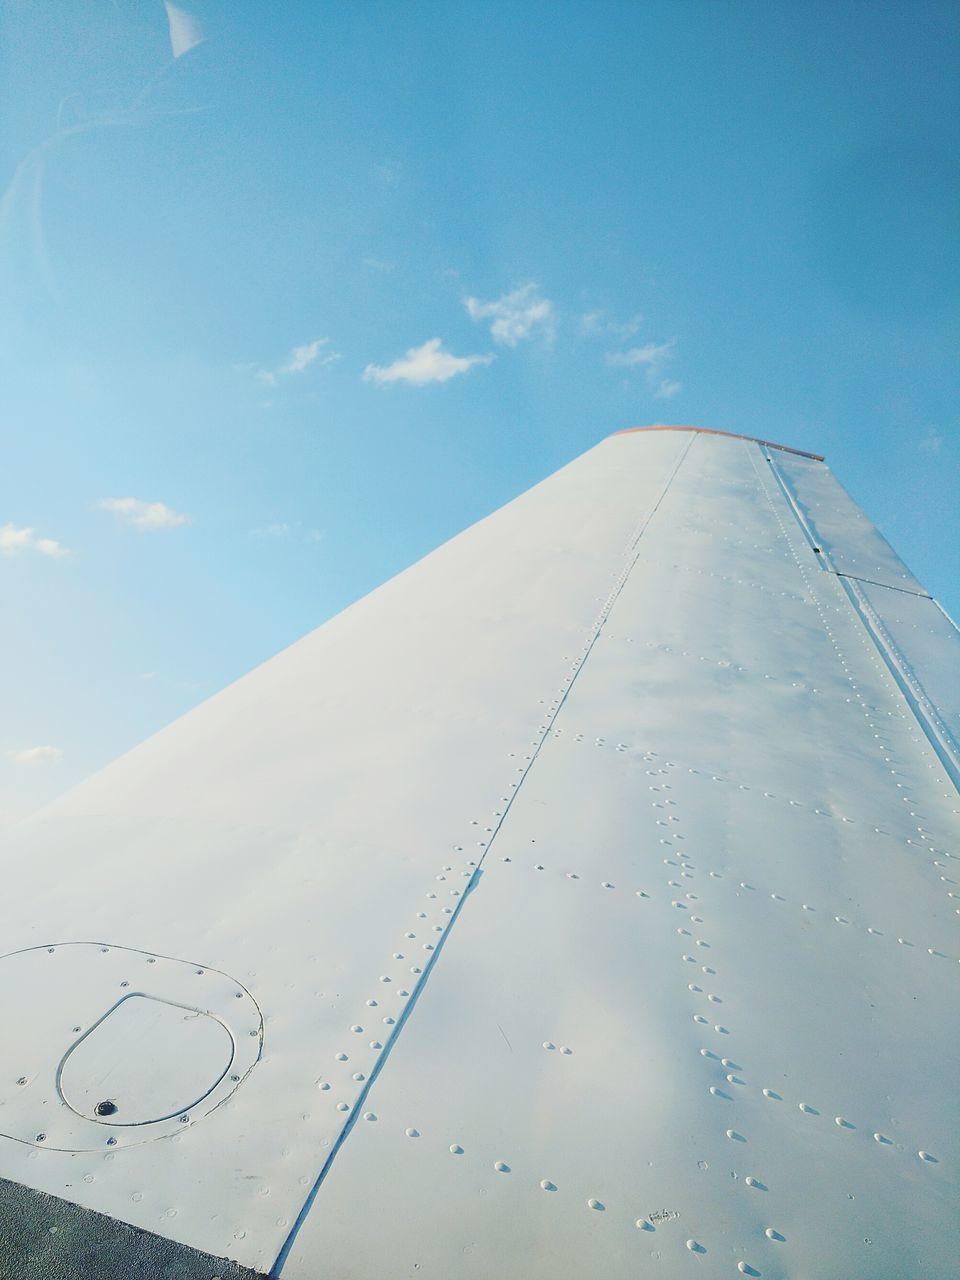 airplane, sky, air vehicle, transportation, cloud - sky, mode of transport, no people, day, outdoors, flying, aircraft wing, airplane wing, nature, commercial airplane